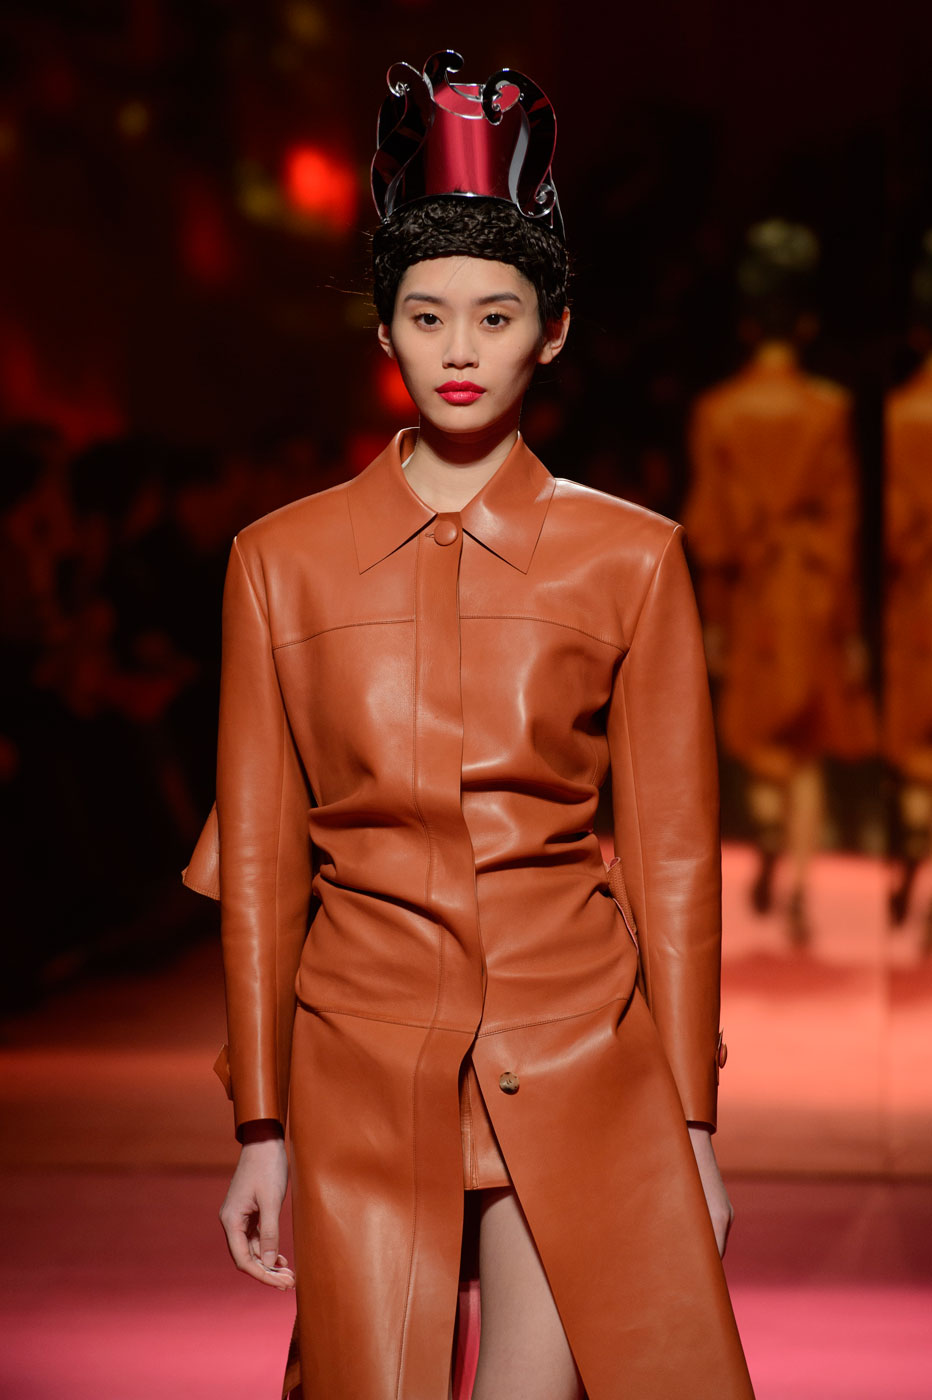 Schiaparelli-fashion-runway-show-haute-couture-paris-spring-summer-2015-the-impression-10